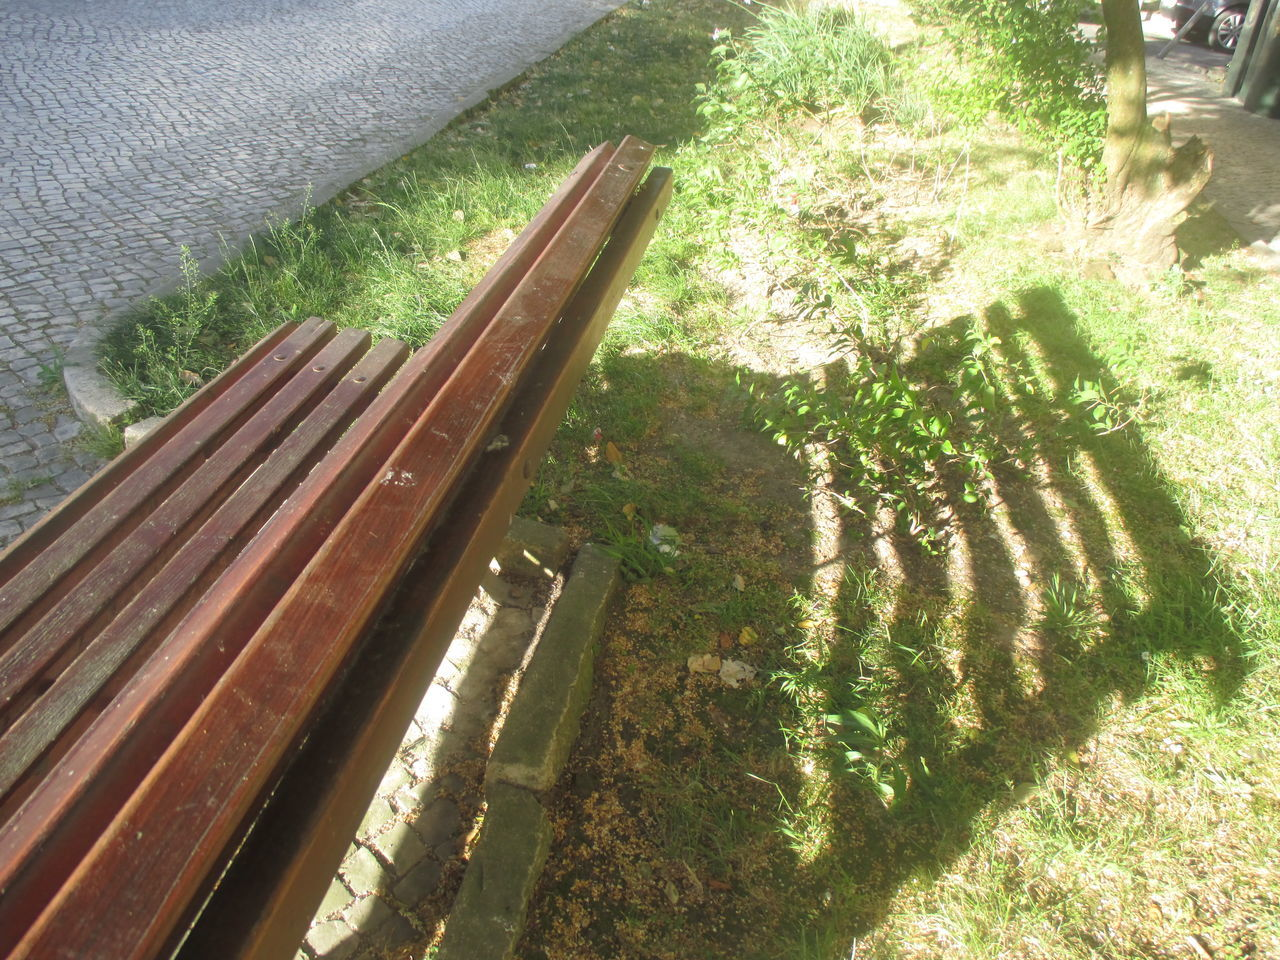 #shadow Of The Bench Ater Ego Of A Bench Beautiful Shadow Beauty In Nature Bench Bench In The Park Bushes Day Empty Bench Grass Growth Growth Interesting Shadows Loneliness Nature Nice Day Nice Weather No People Outdoors Park Plant Romantic Shadow Sunlight Sunny Day